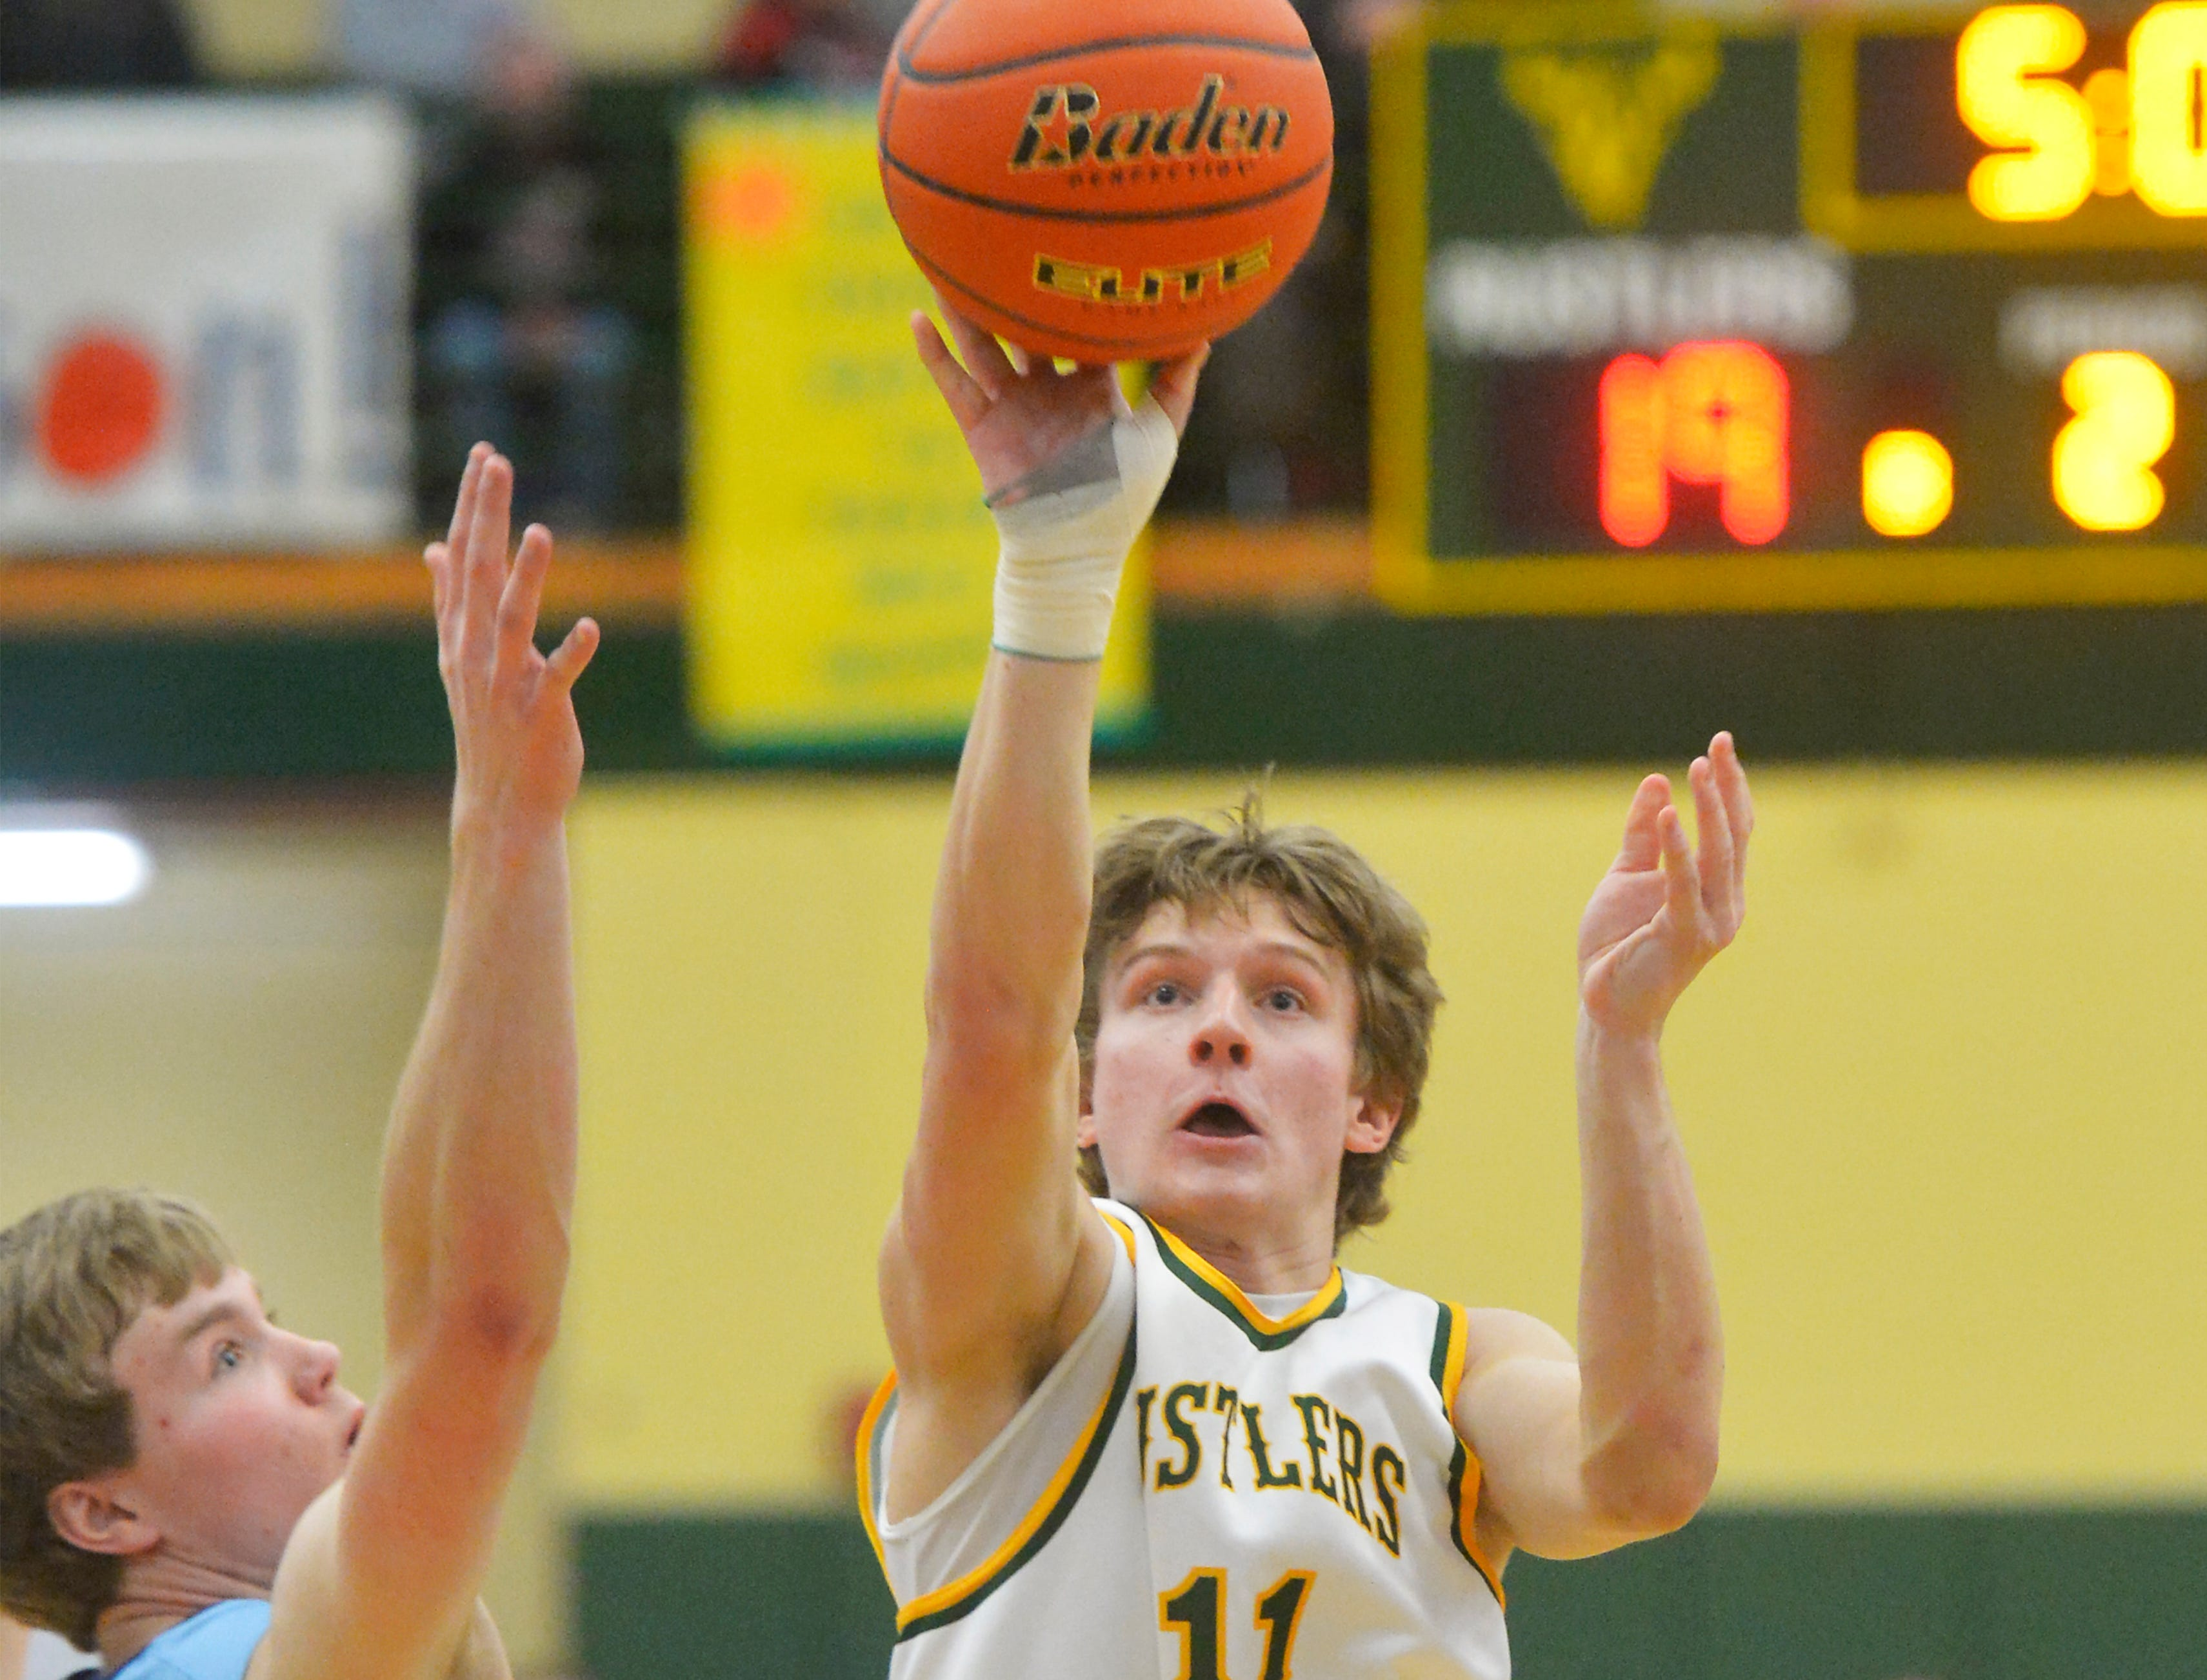 CMR's Cason Taylor attempts a shot during Fridays semifinal game against Great Falls High in the Eastern AA Basketball Tournament at the CMR Fieldhouse.